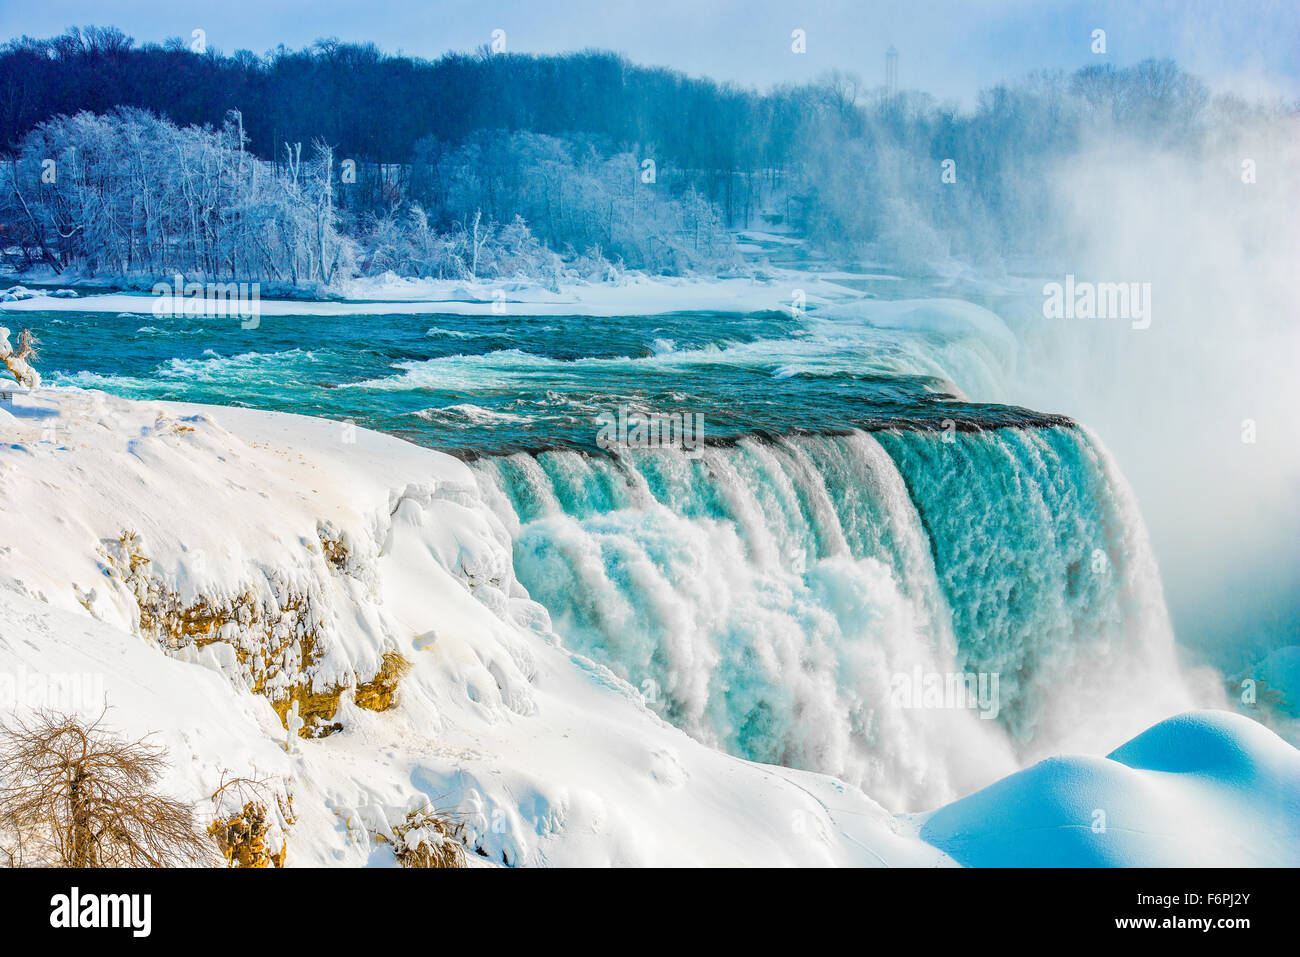 Niagara Falls in winter, Niagara Falls State Park, New York, American Falls and BRidalveil Falls - Stock Image